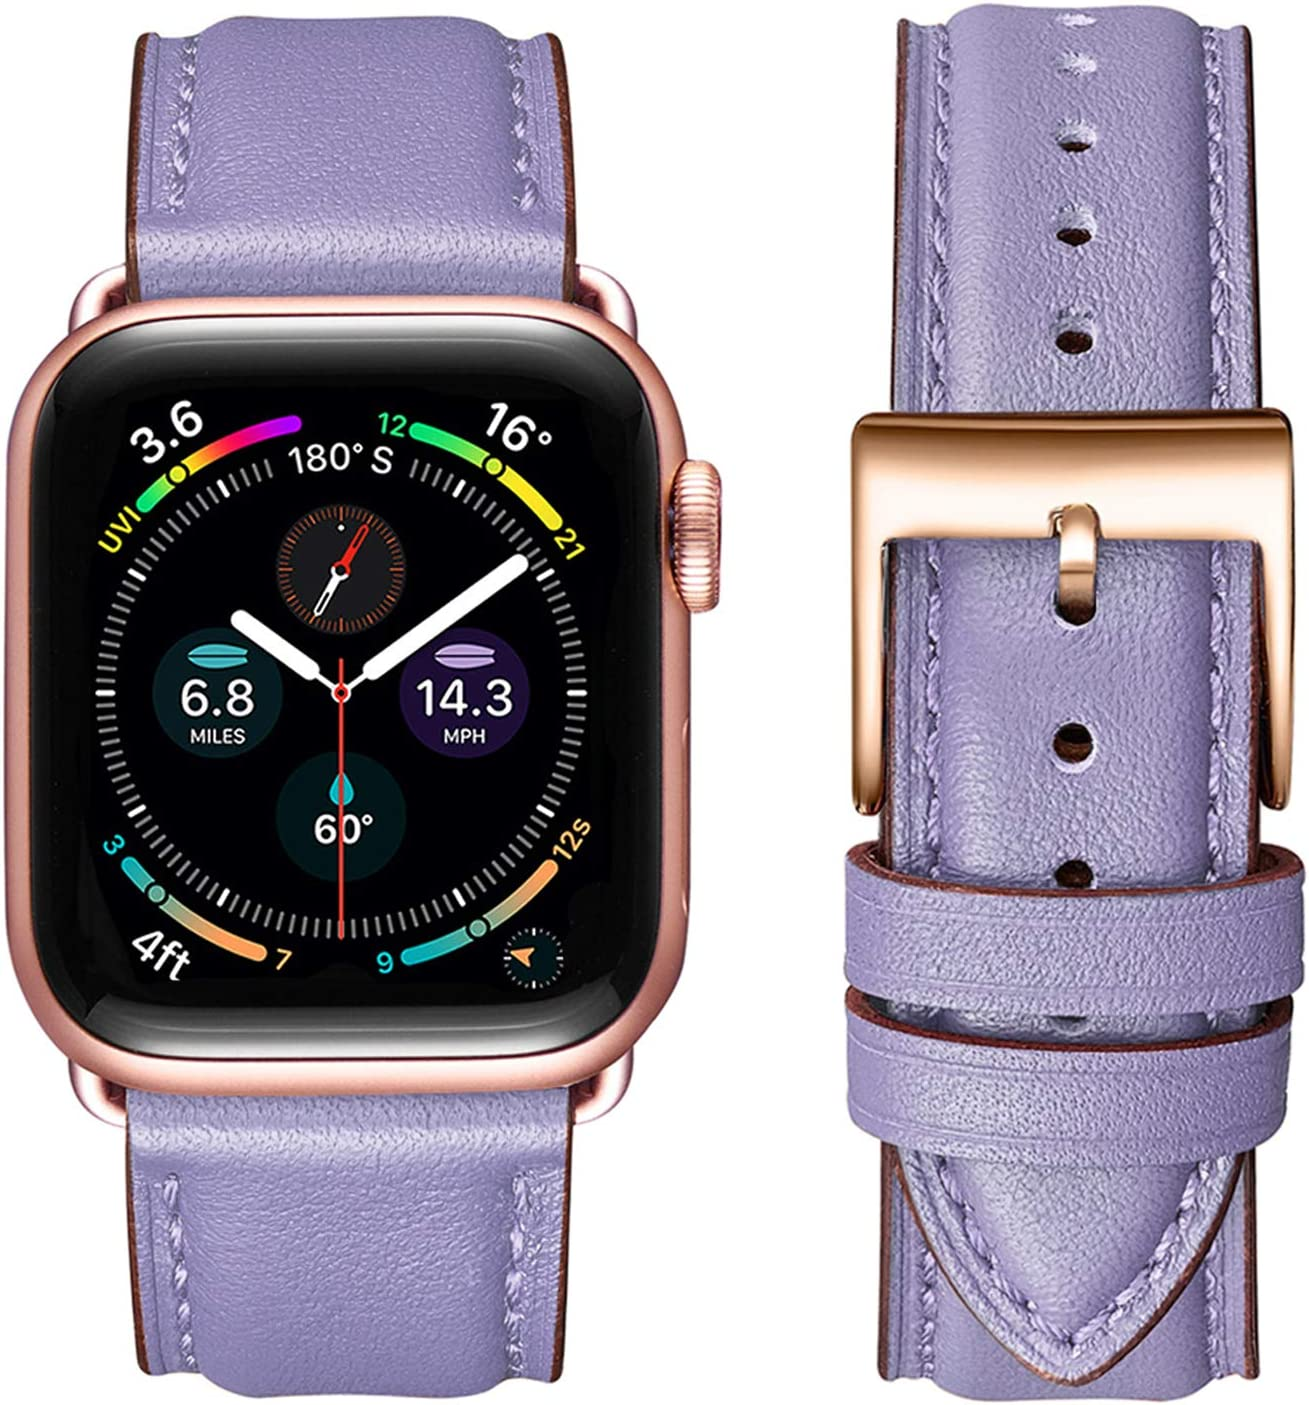 OMIU Square Bands Compatible for Apple Watch 38mm 40mm 42mm 44mm, Genuine Leather Replacement Band Compatible with Apple Watch Series 6/5/4/3/2/1, iWatch SE(Lilac/Rose Gold Connector, 38mm 40mm)